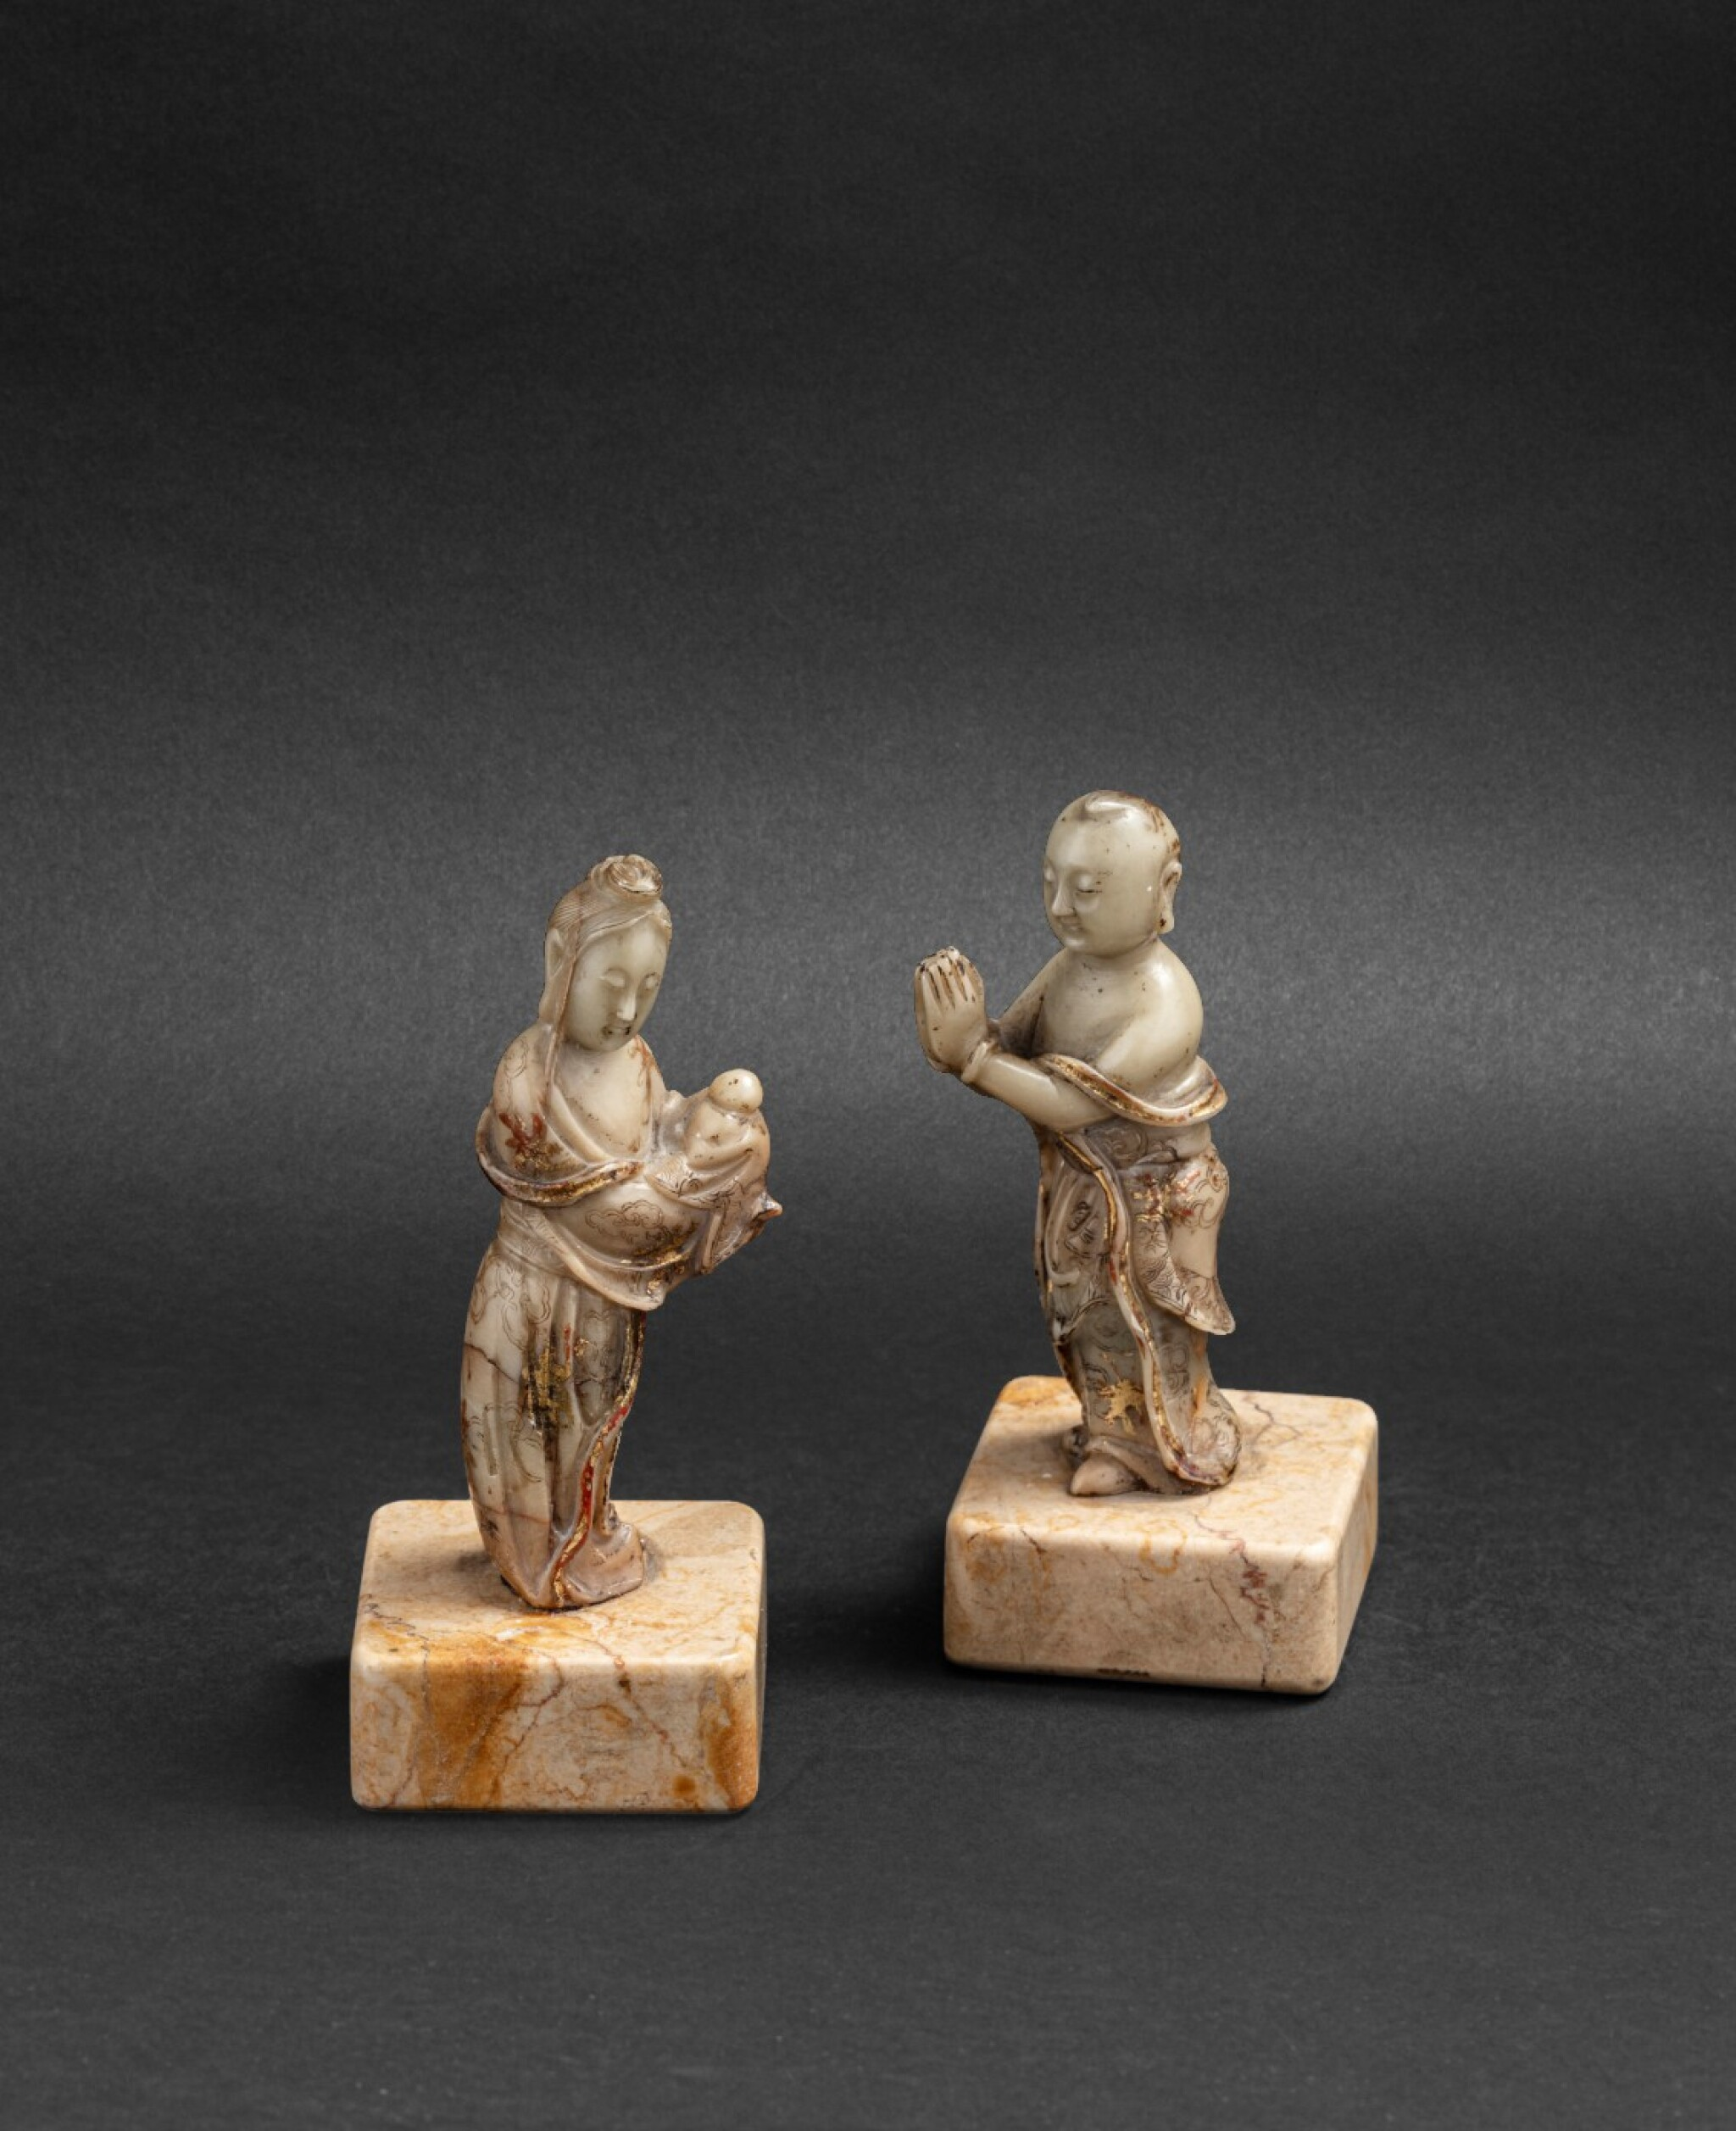 View 1 of Lot 159. Deux petites figures d'adorants bouddhistes en stéatite Dynastie Qing, XVIIE-XVIIIE siècles | 清十七至十八世紀 壽山石雕人物立像兩尊 | Two finely carved and incised-gilt soapstone Buddhist acolytes, Qing Dynasty, 17th-18th century.